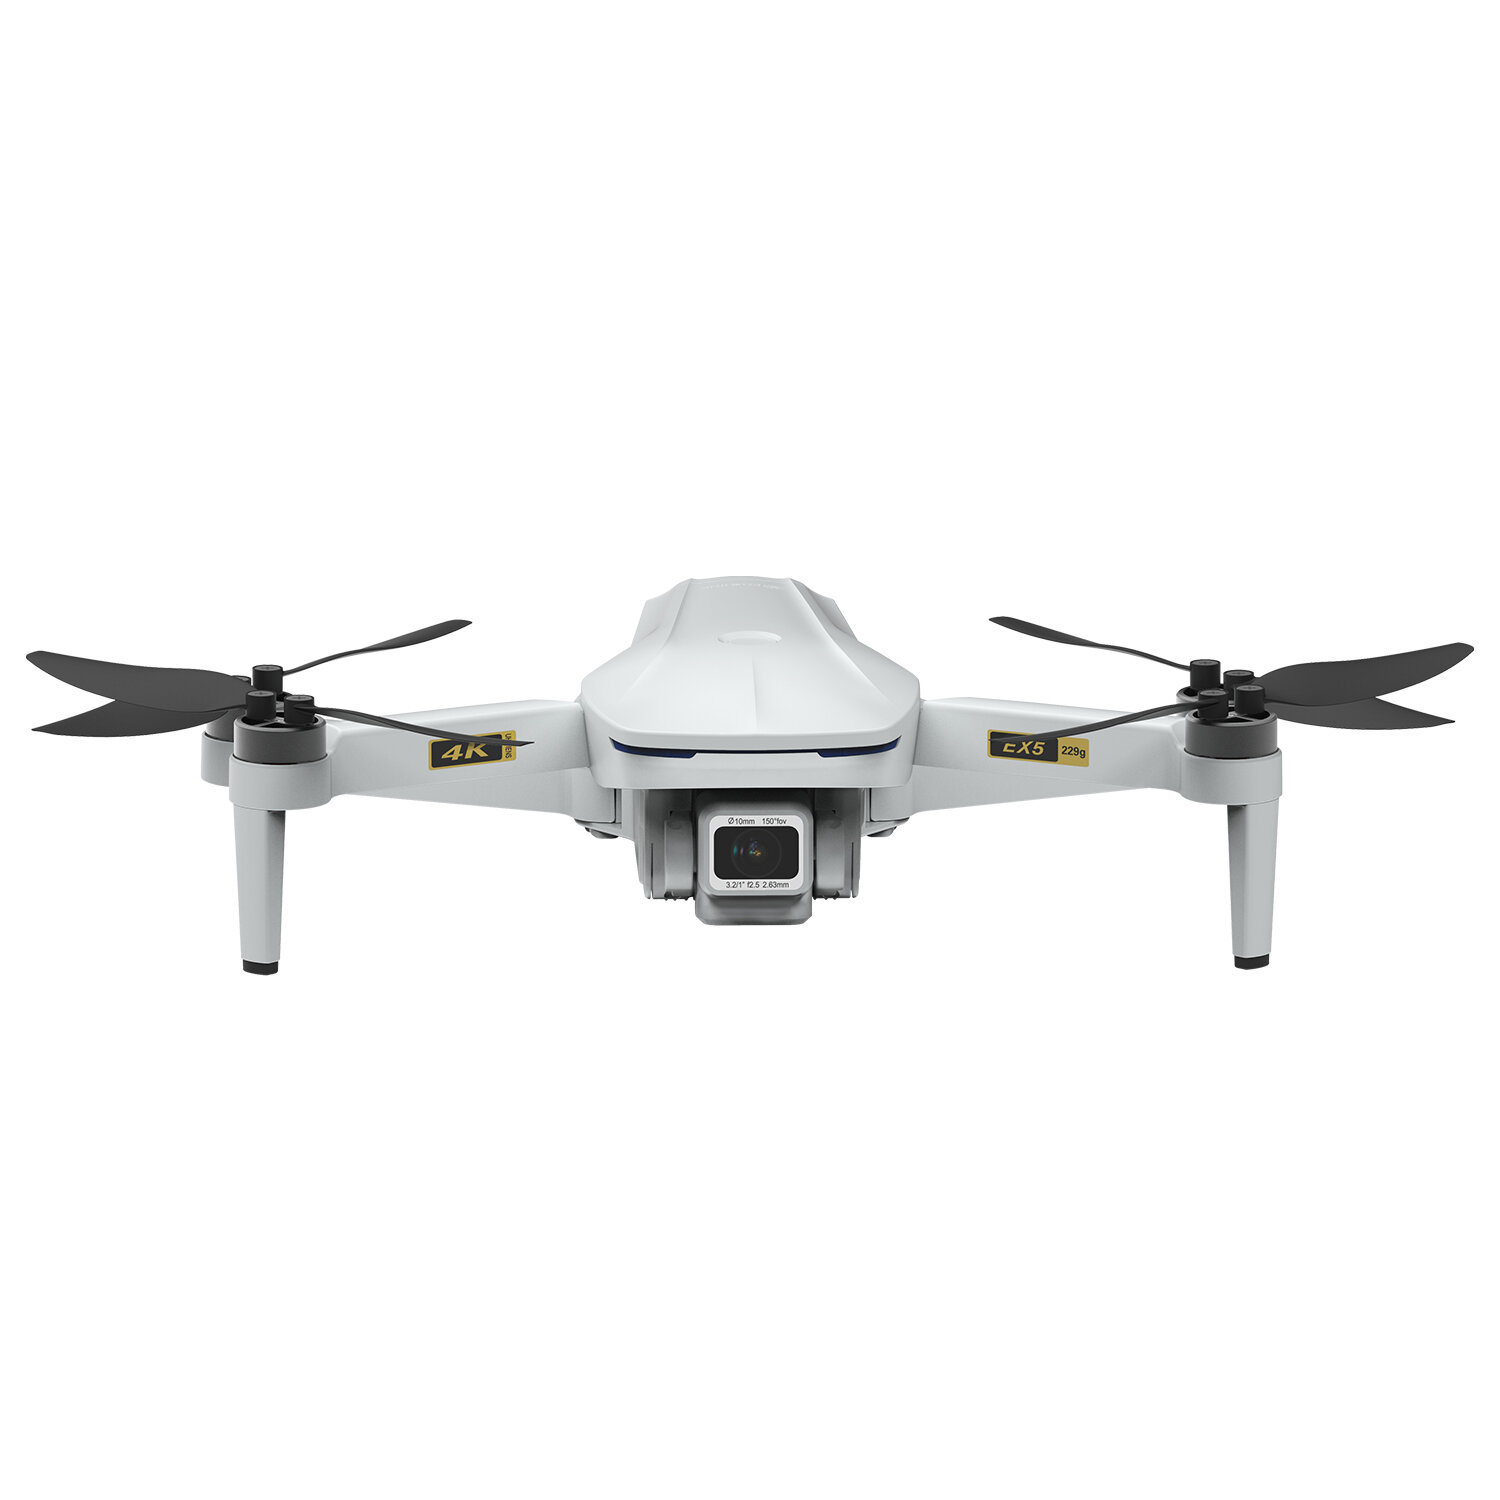 ZLRC SG107 HD Aerial Folding Drone With Switchable 4K Optical Flow Dual Cameras 50X Zoom RC Quadcopter RTF - 7